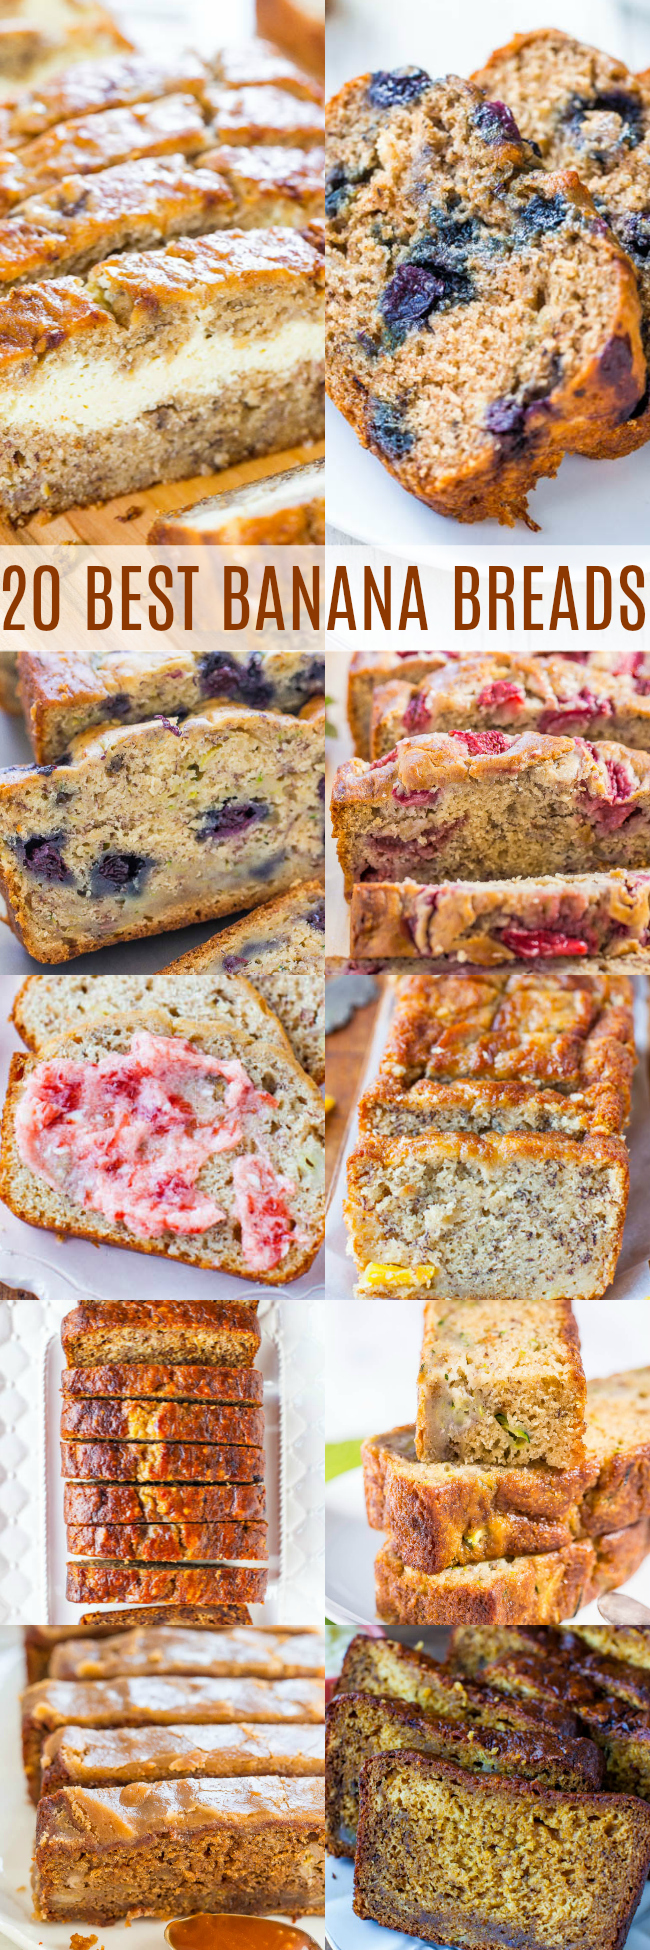 The 20 BEST Banana Bread Recipes - Have ripe bananas? These recipes are just what you need - including banana bread with blueberries, zucchini, carrots, pumpkin, in a slow cooker, in an air fryer - these recipes have you covered!! Bonus: every single recipe is a no-mixer recipe!!